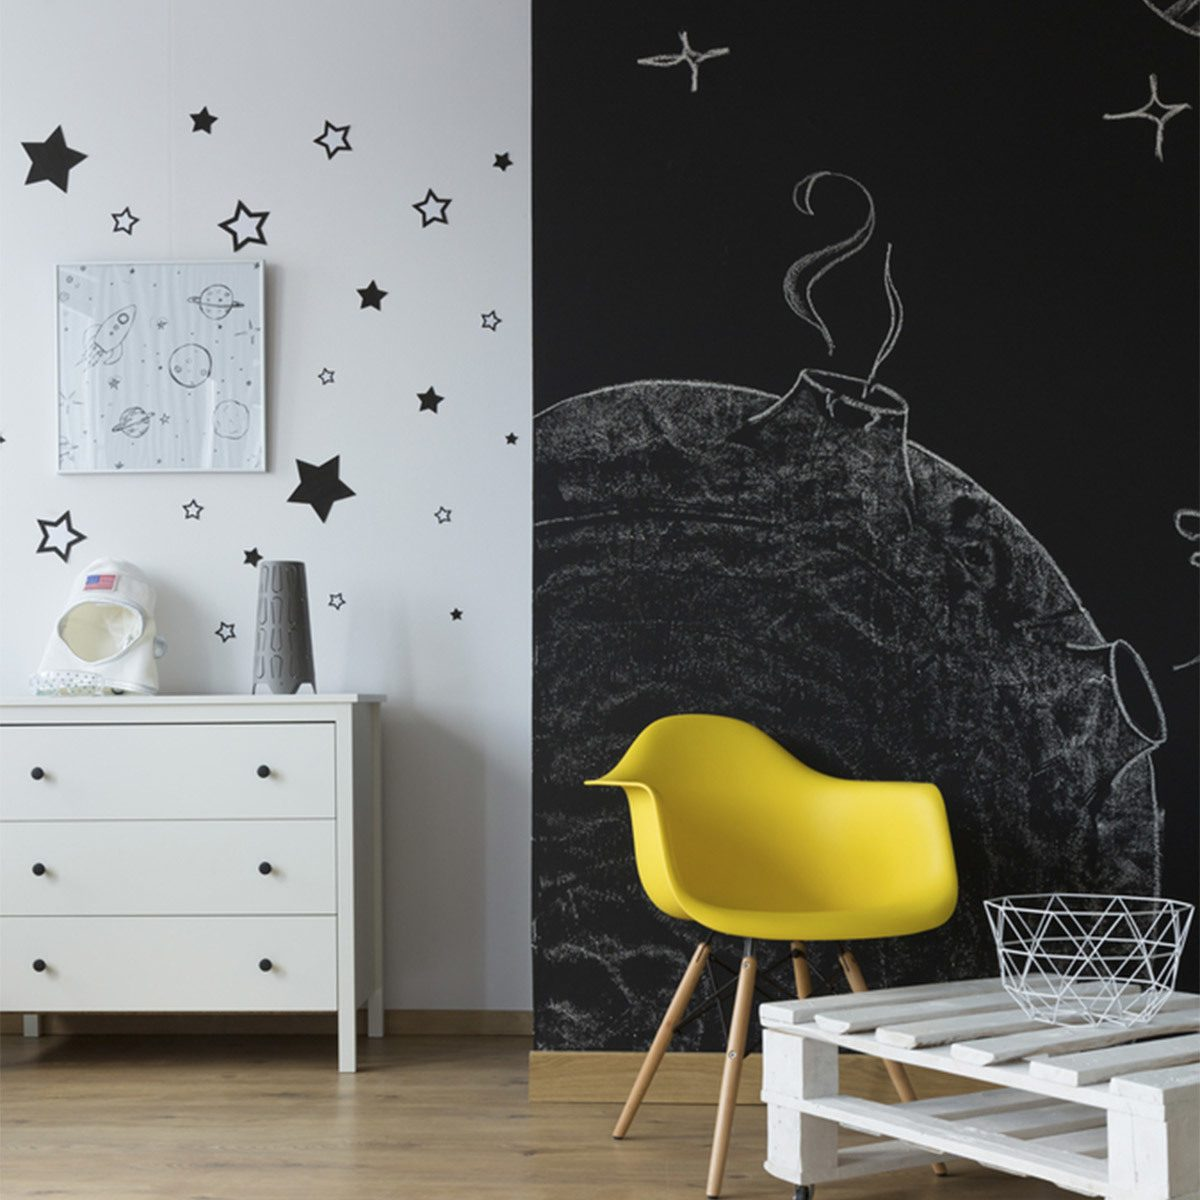 Modern Accent Wall: Stick-On Style